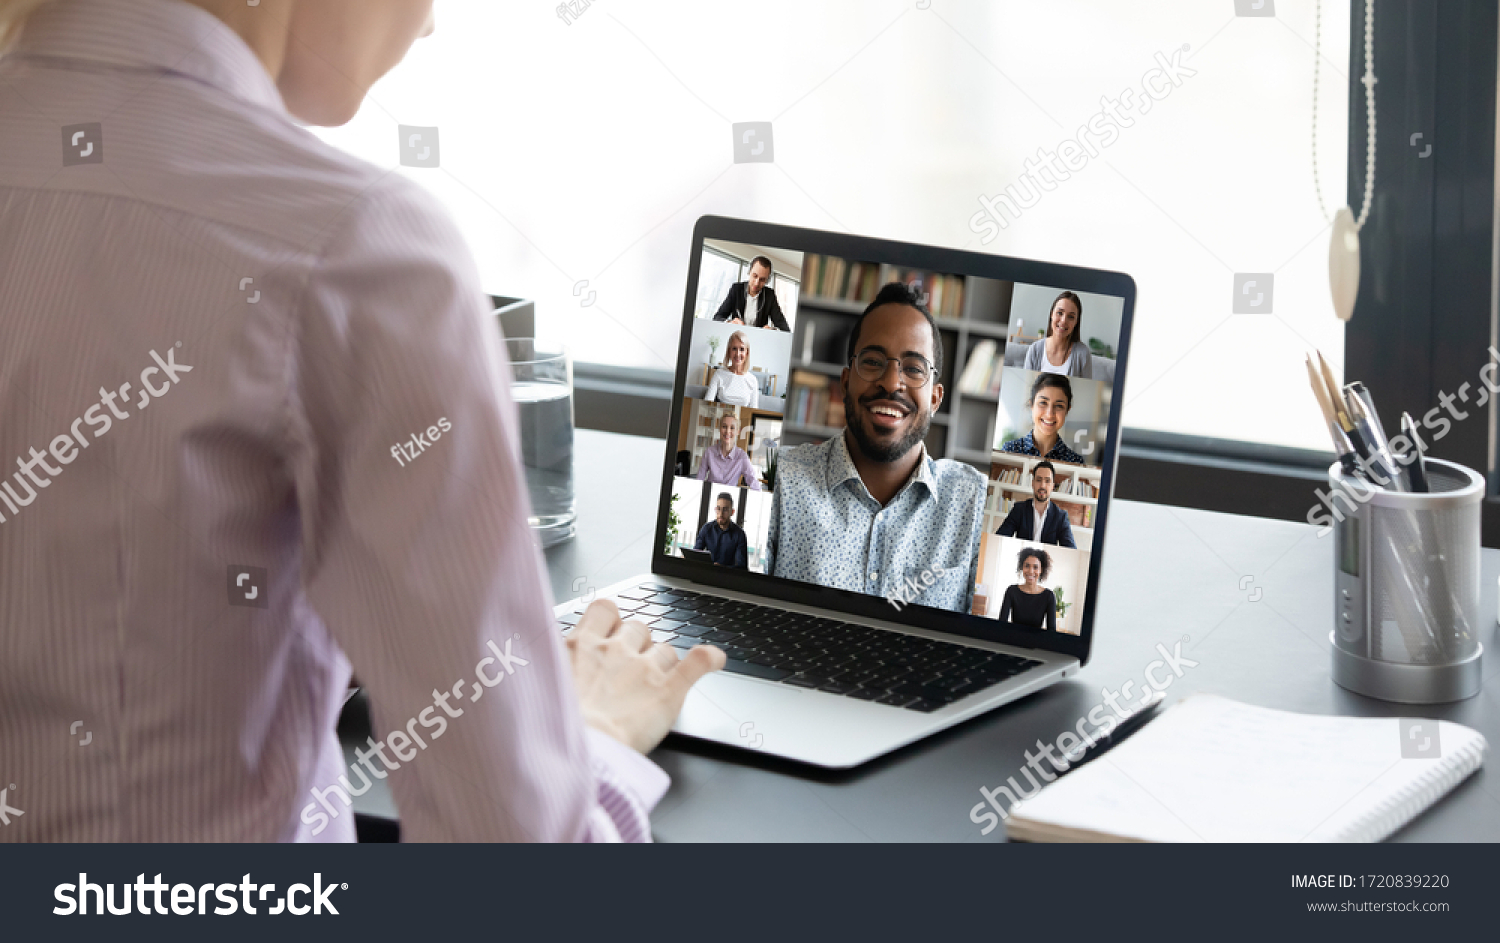 Close up of woman worker sit at desk talk speak on video call with multiracial colleagues or friends, female employee have online briefing with international team, engaged webcam conference at home #1720839220